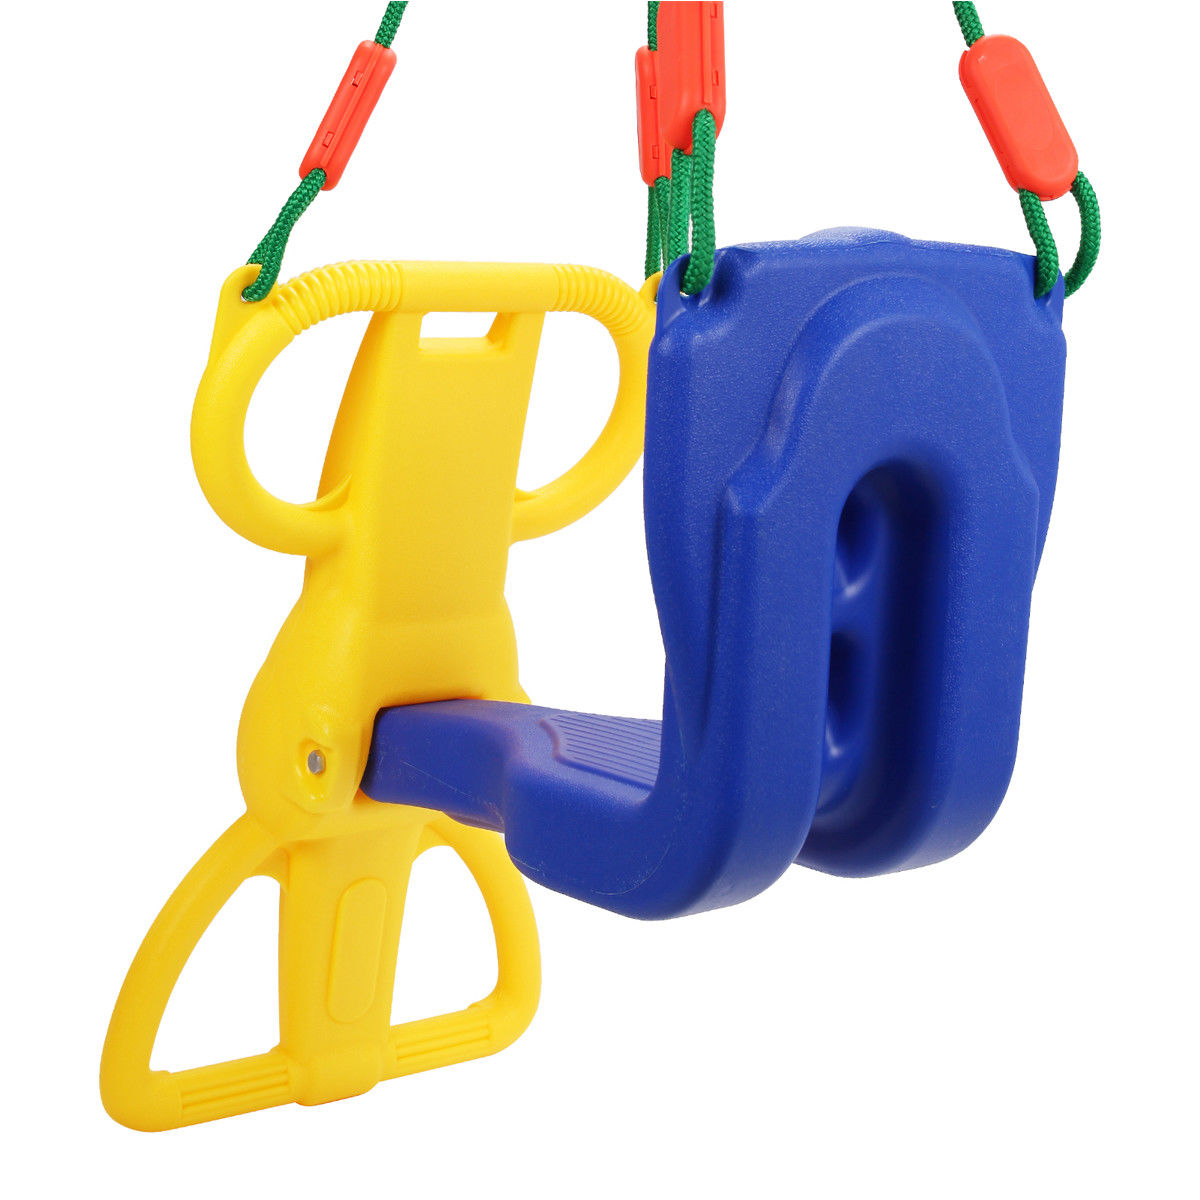 Backyard Kids Rider Glider Swing with Hangers